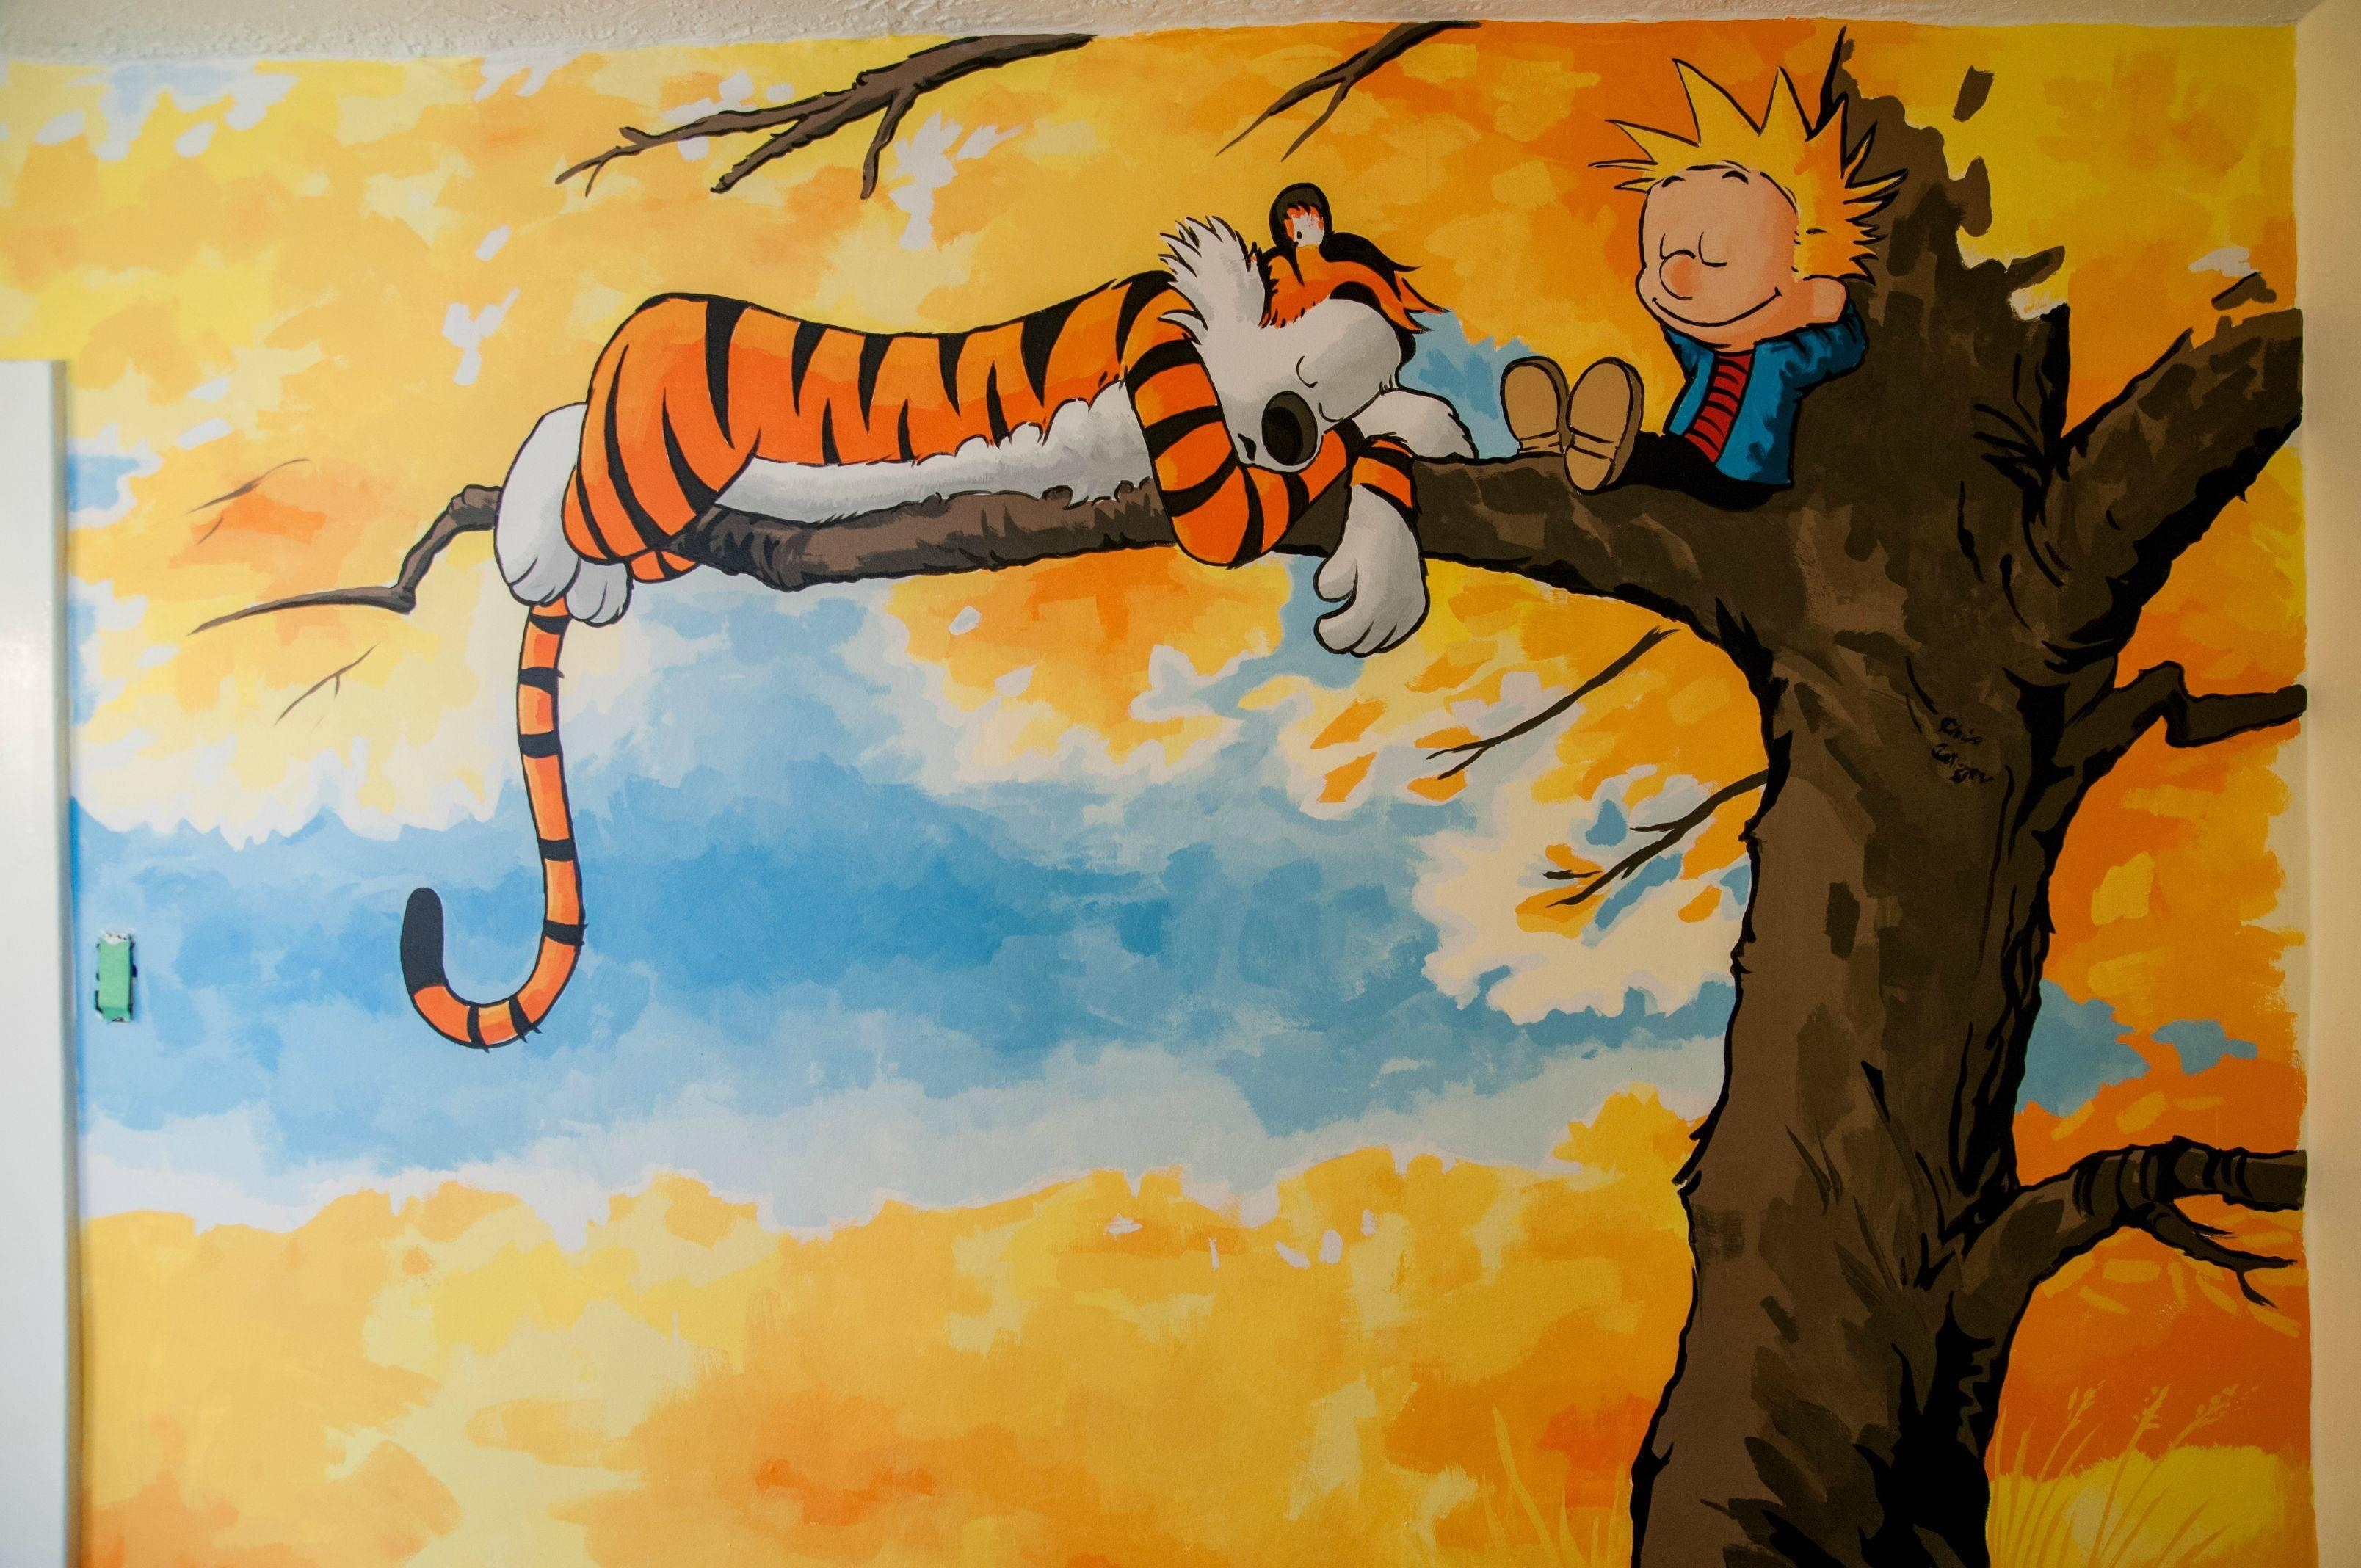 Friends Asked Me To Paint A Calvin & Hobbes Mural In Their Nursery Intended For Calvin And Hobbes Wall Art (Image 13 of 20)